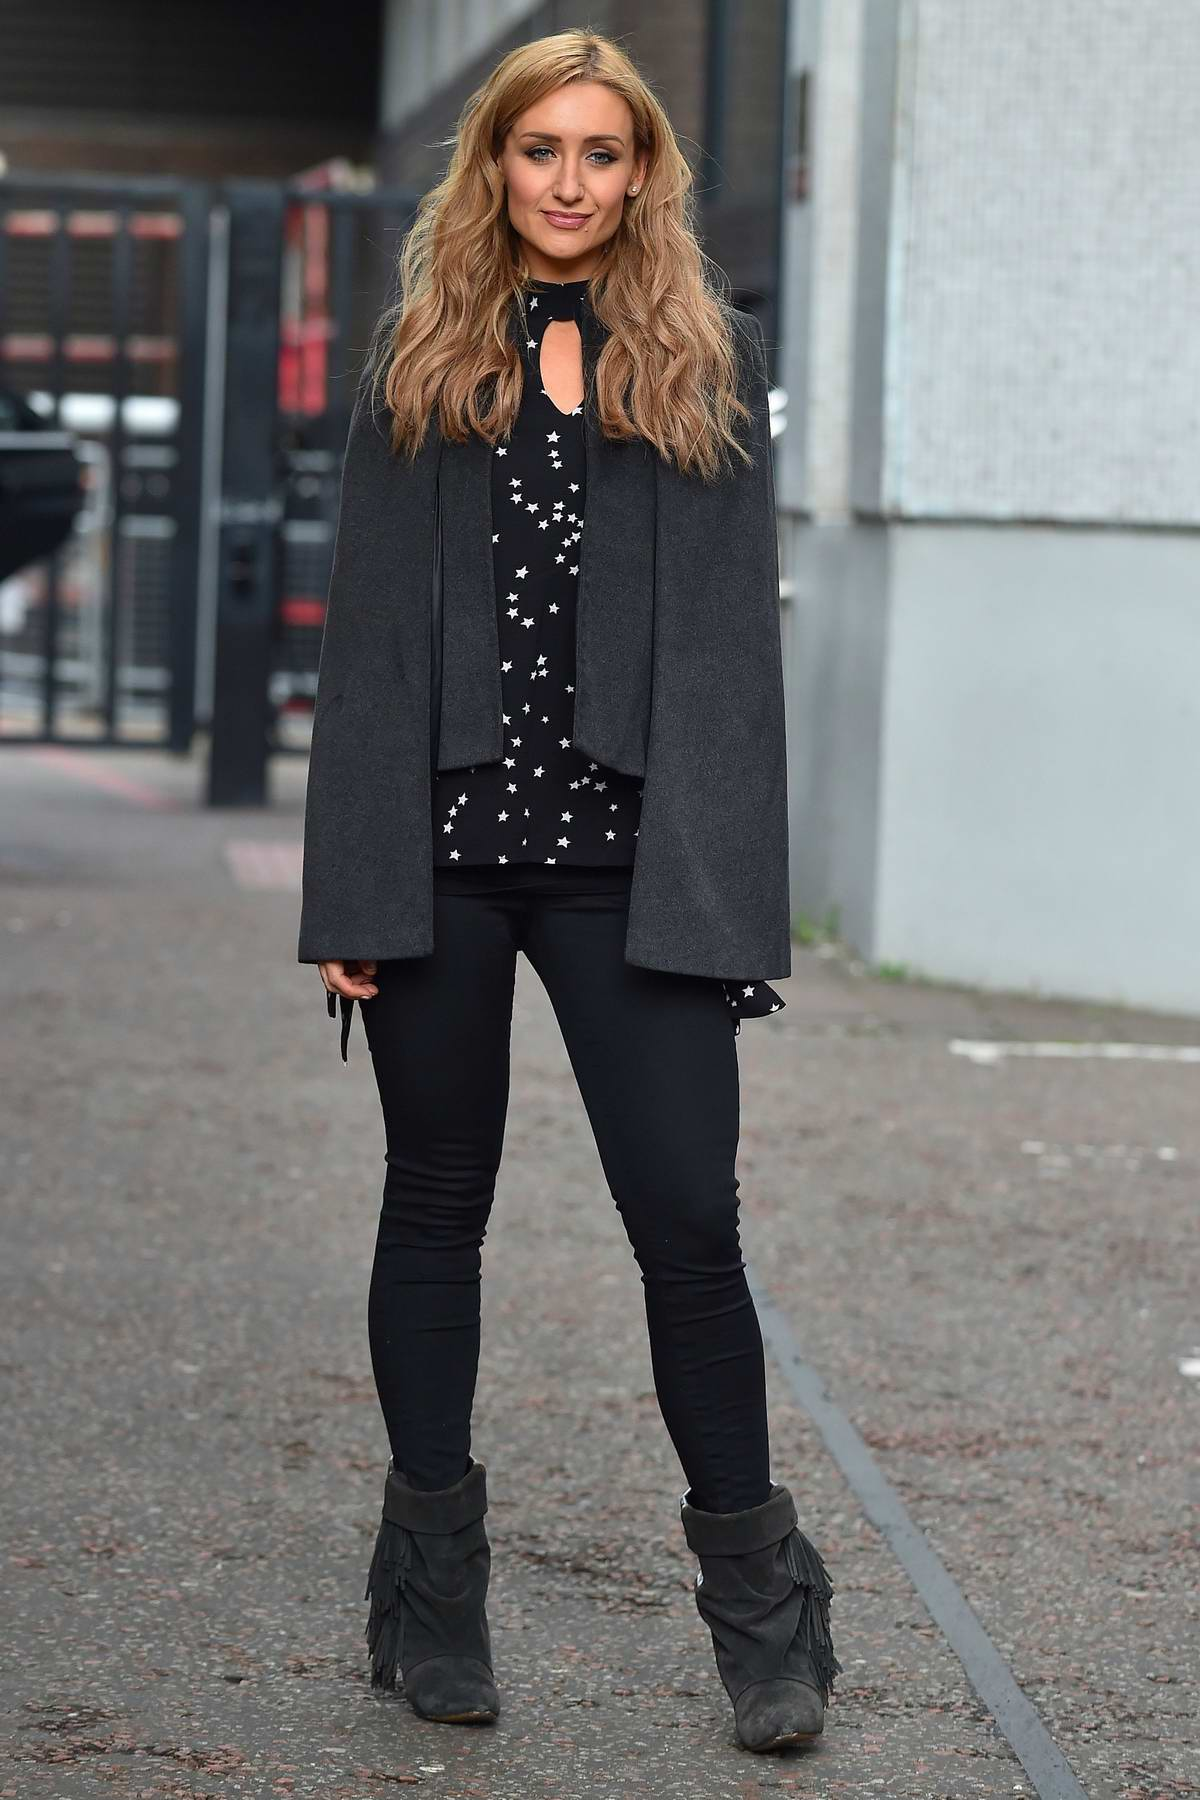 Catherine Tyldesley spotted at the ITV Studios in London